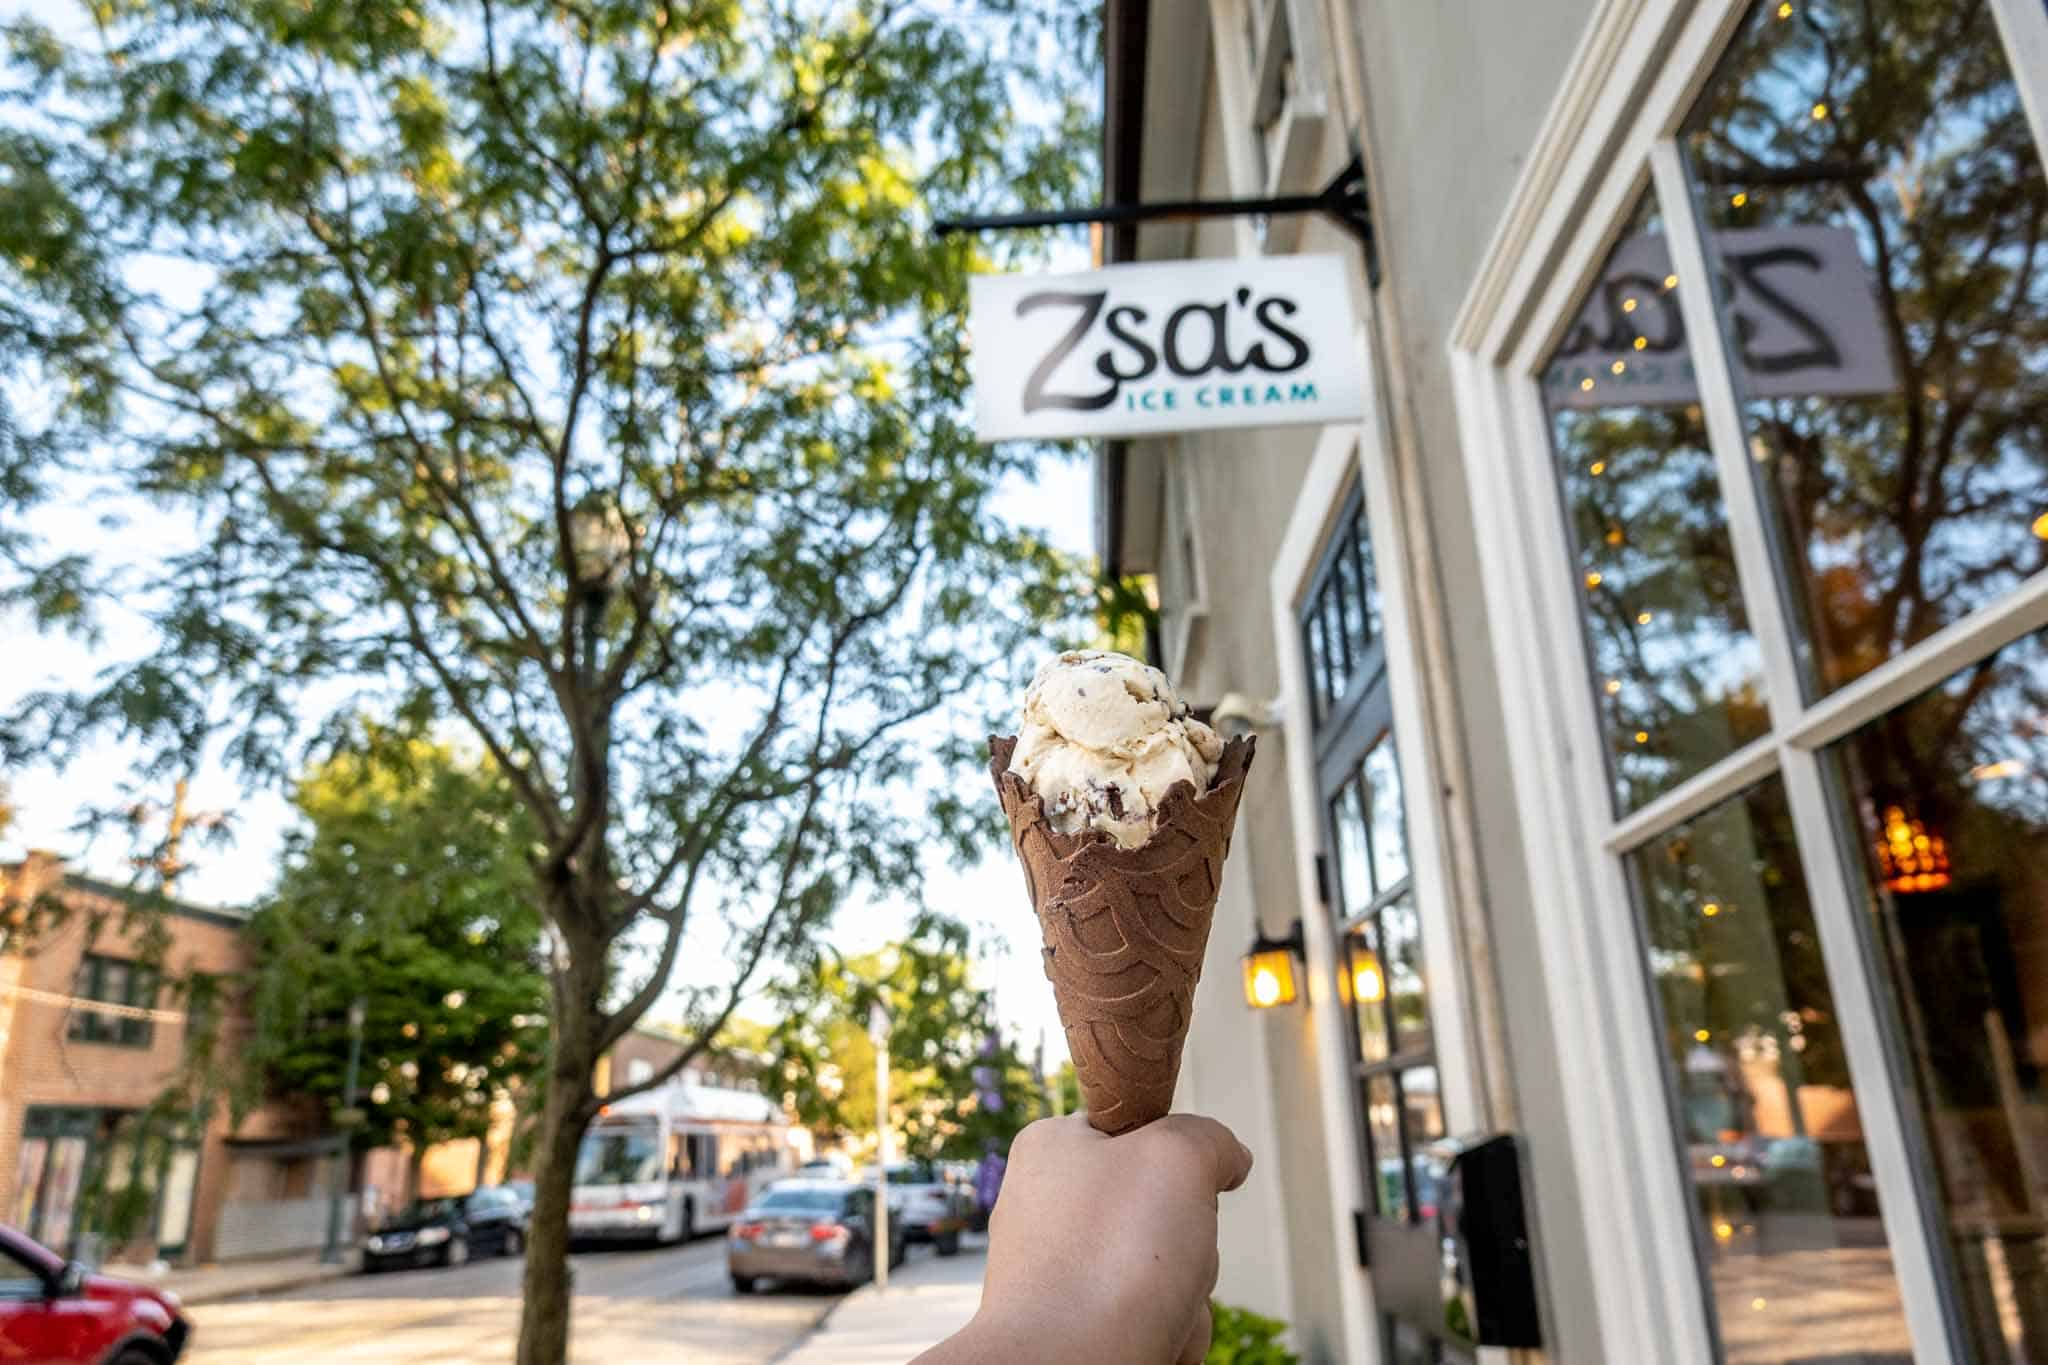 Cone in front of sign for Zsa's Ice Cream